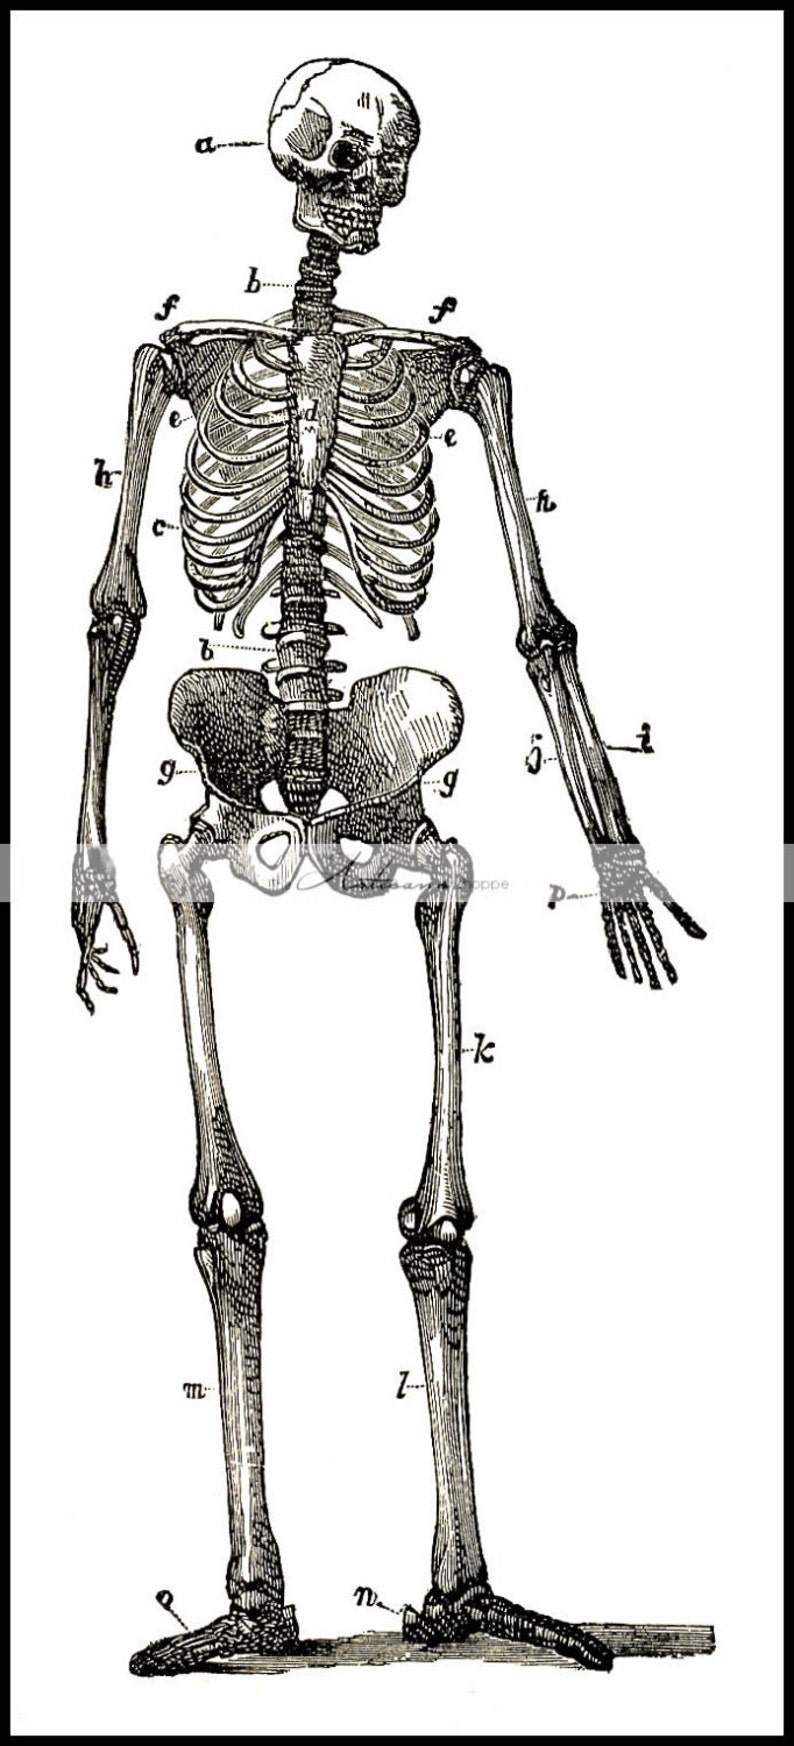 graphic regarding Printable Skeleton Parts referred to as Electronic Obtain Printable - Skeleton Diagram Case in point Human Anatomy Artwork Impression - Paper Crafts Sbook Adjusted Artwork - Halloween Demise